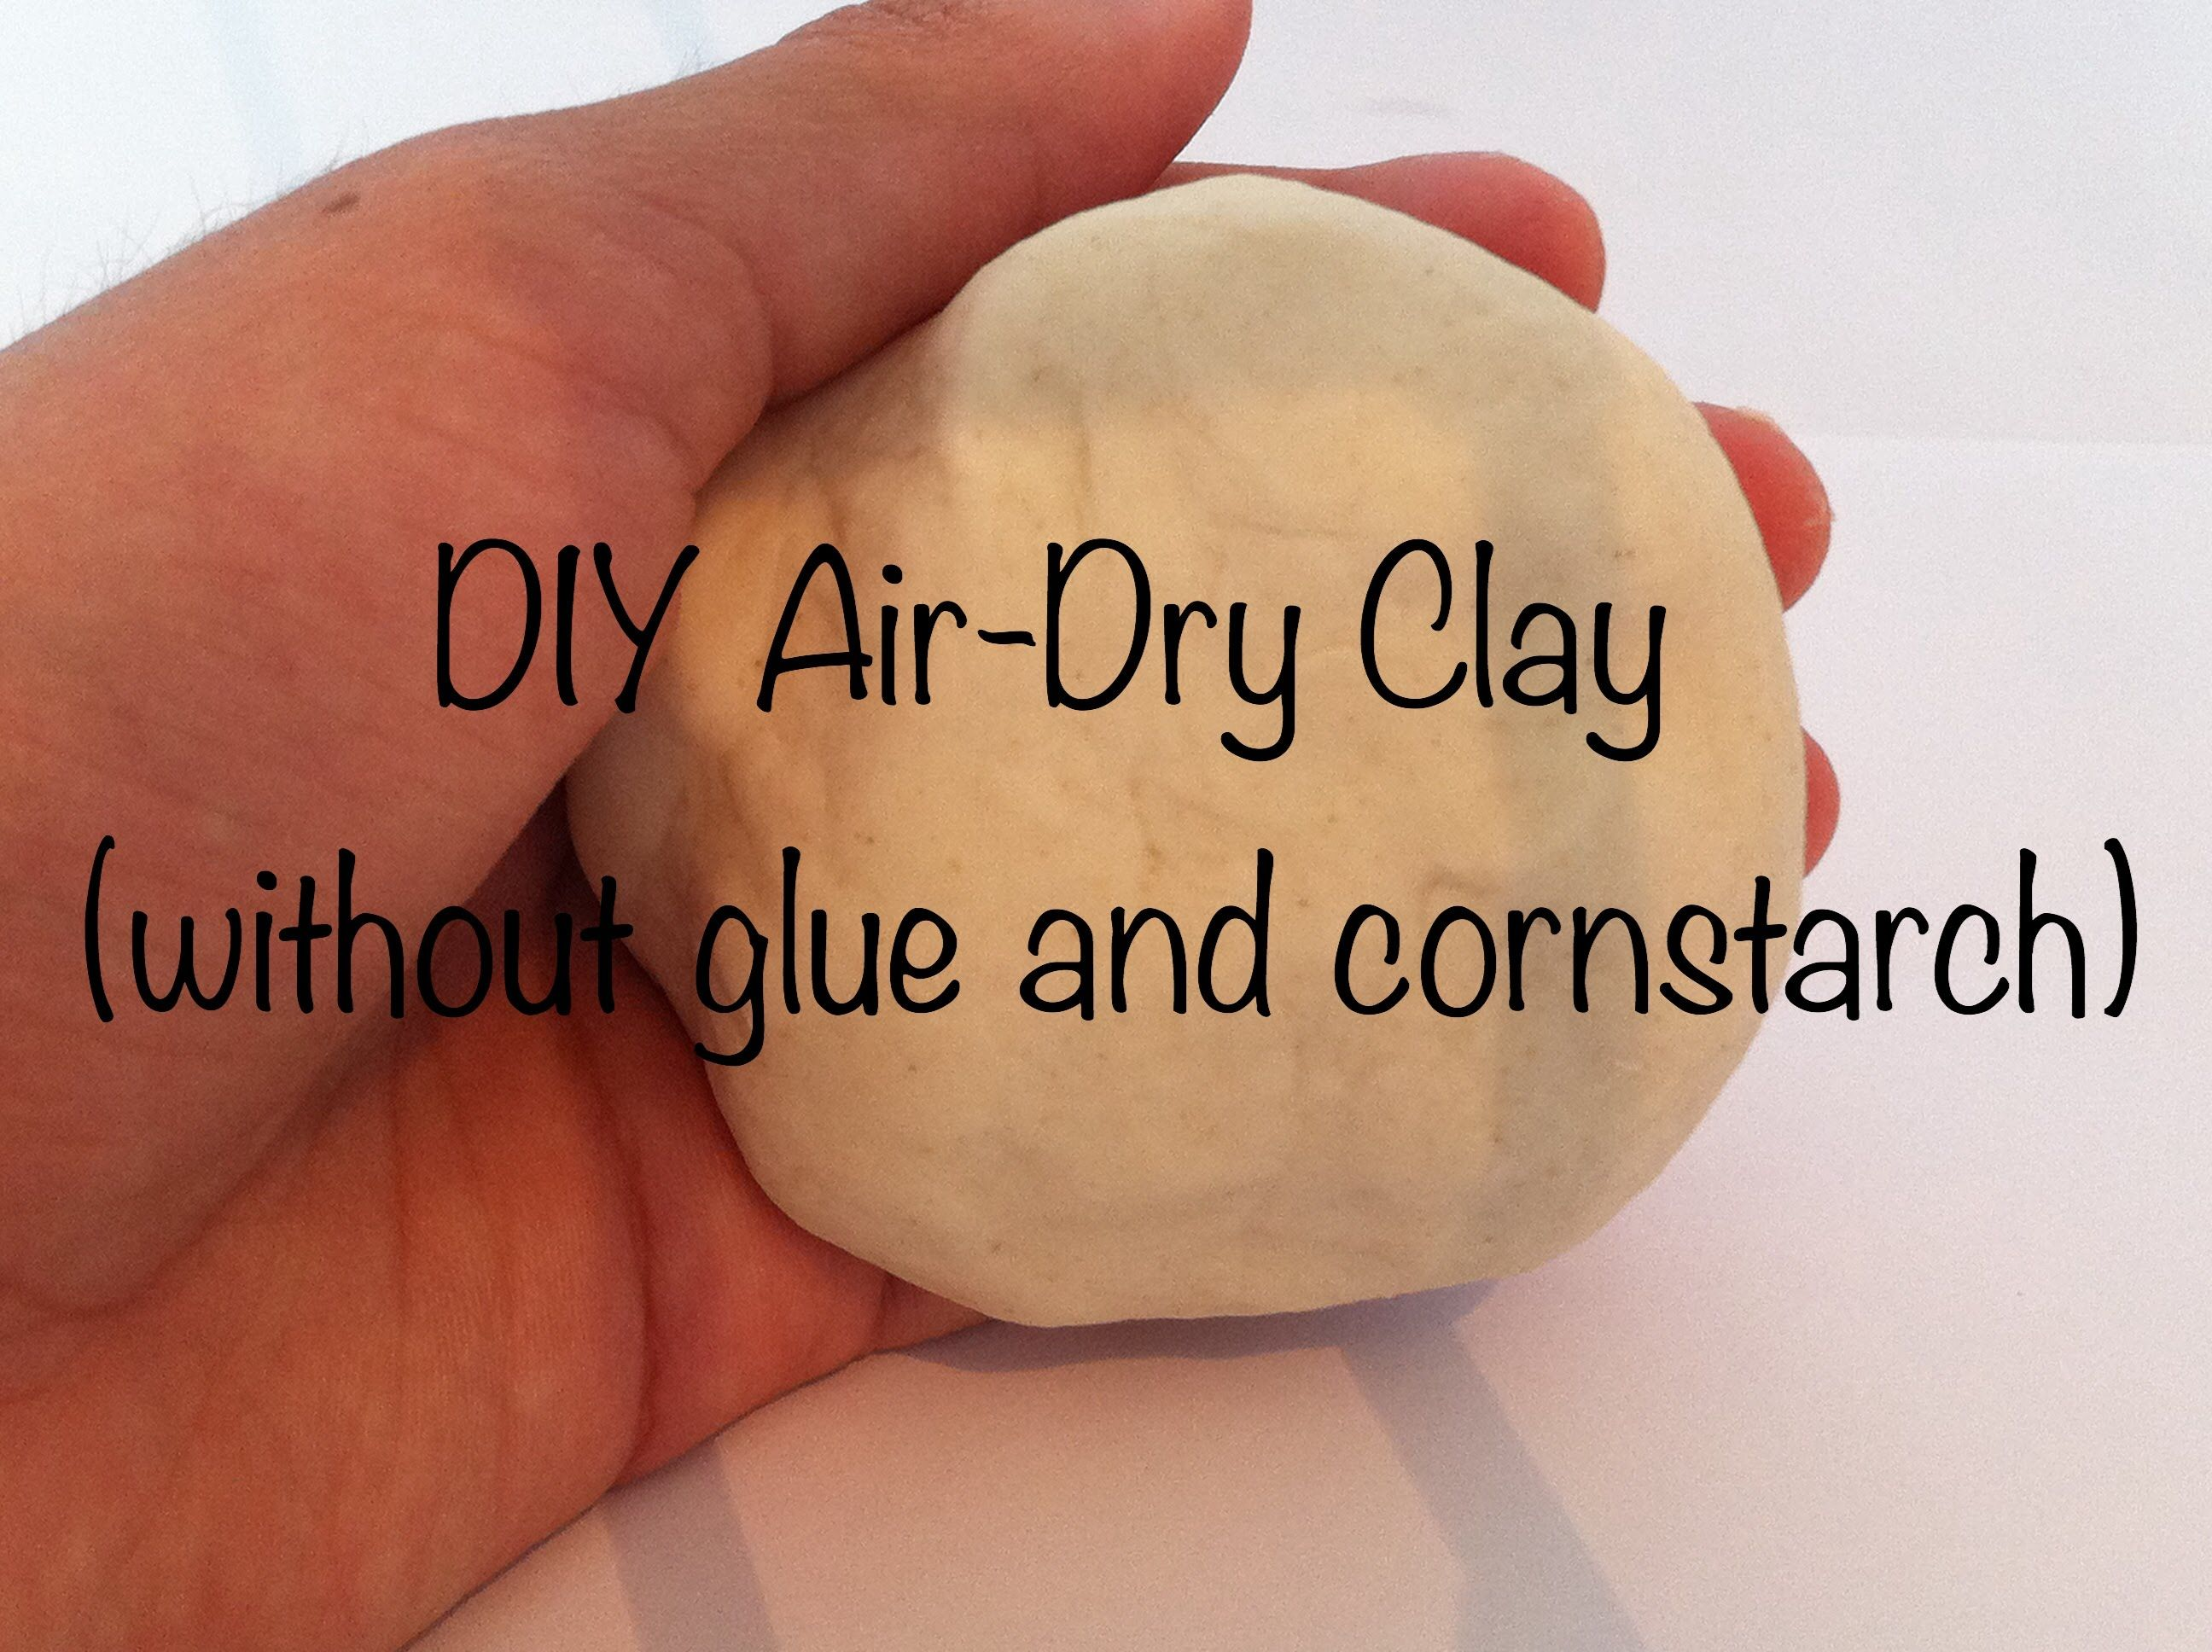 DIY Air Dry Clay (without glue and cornstarch) YouTube